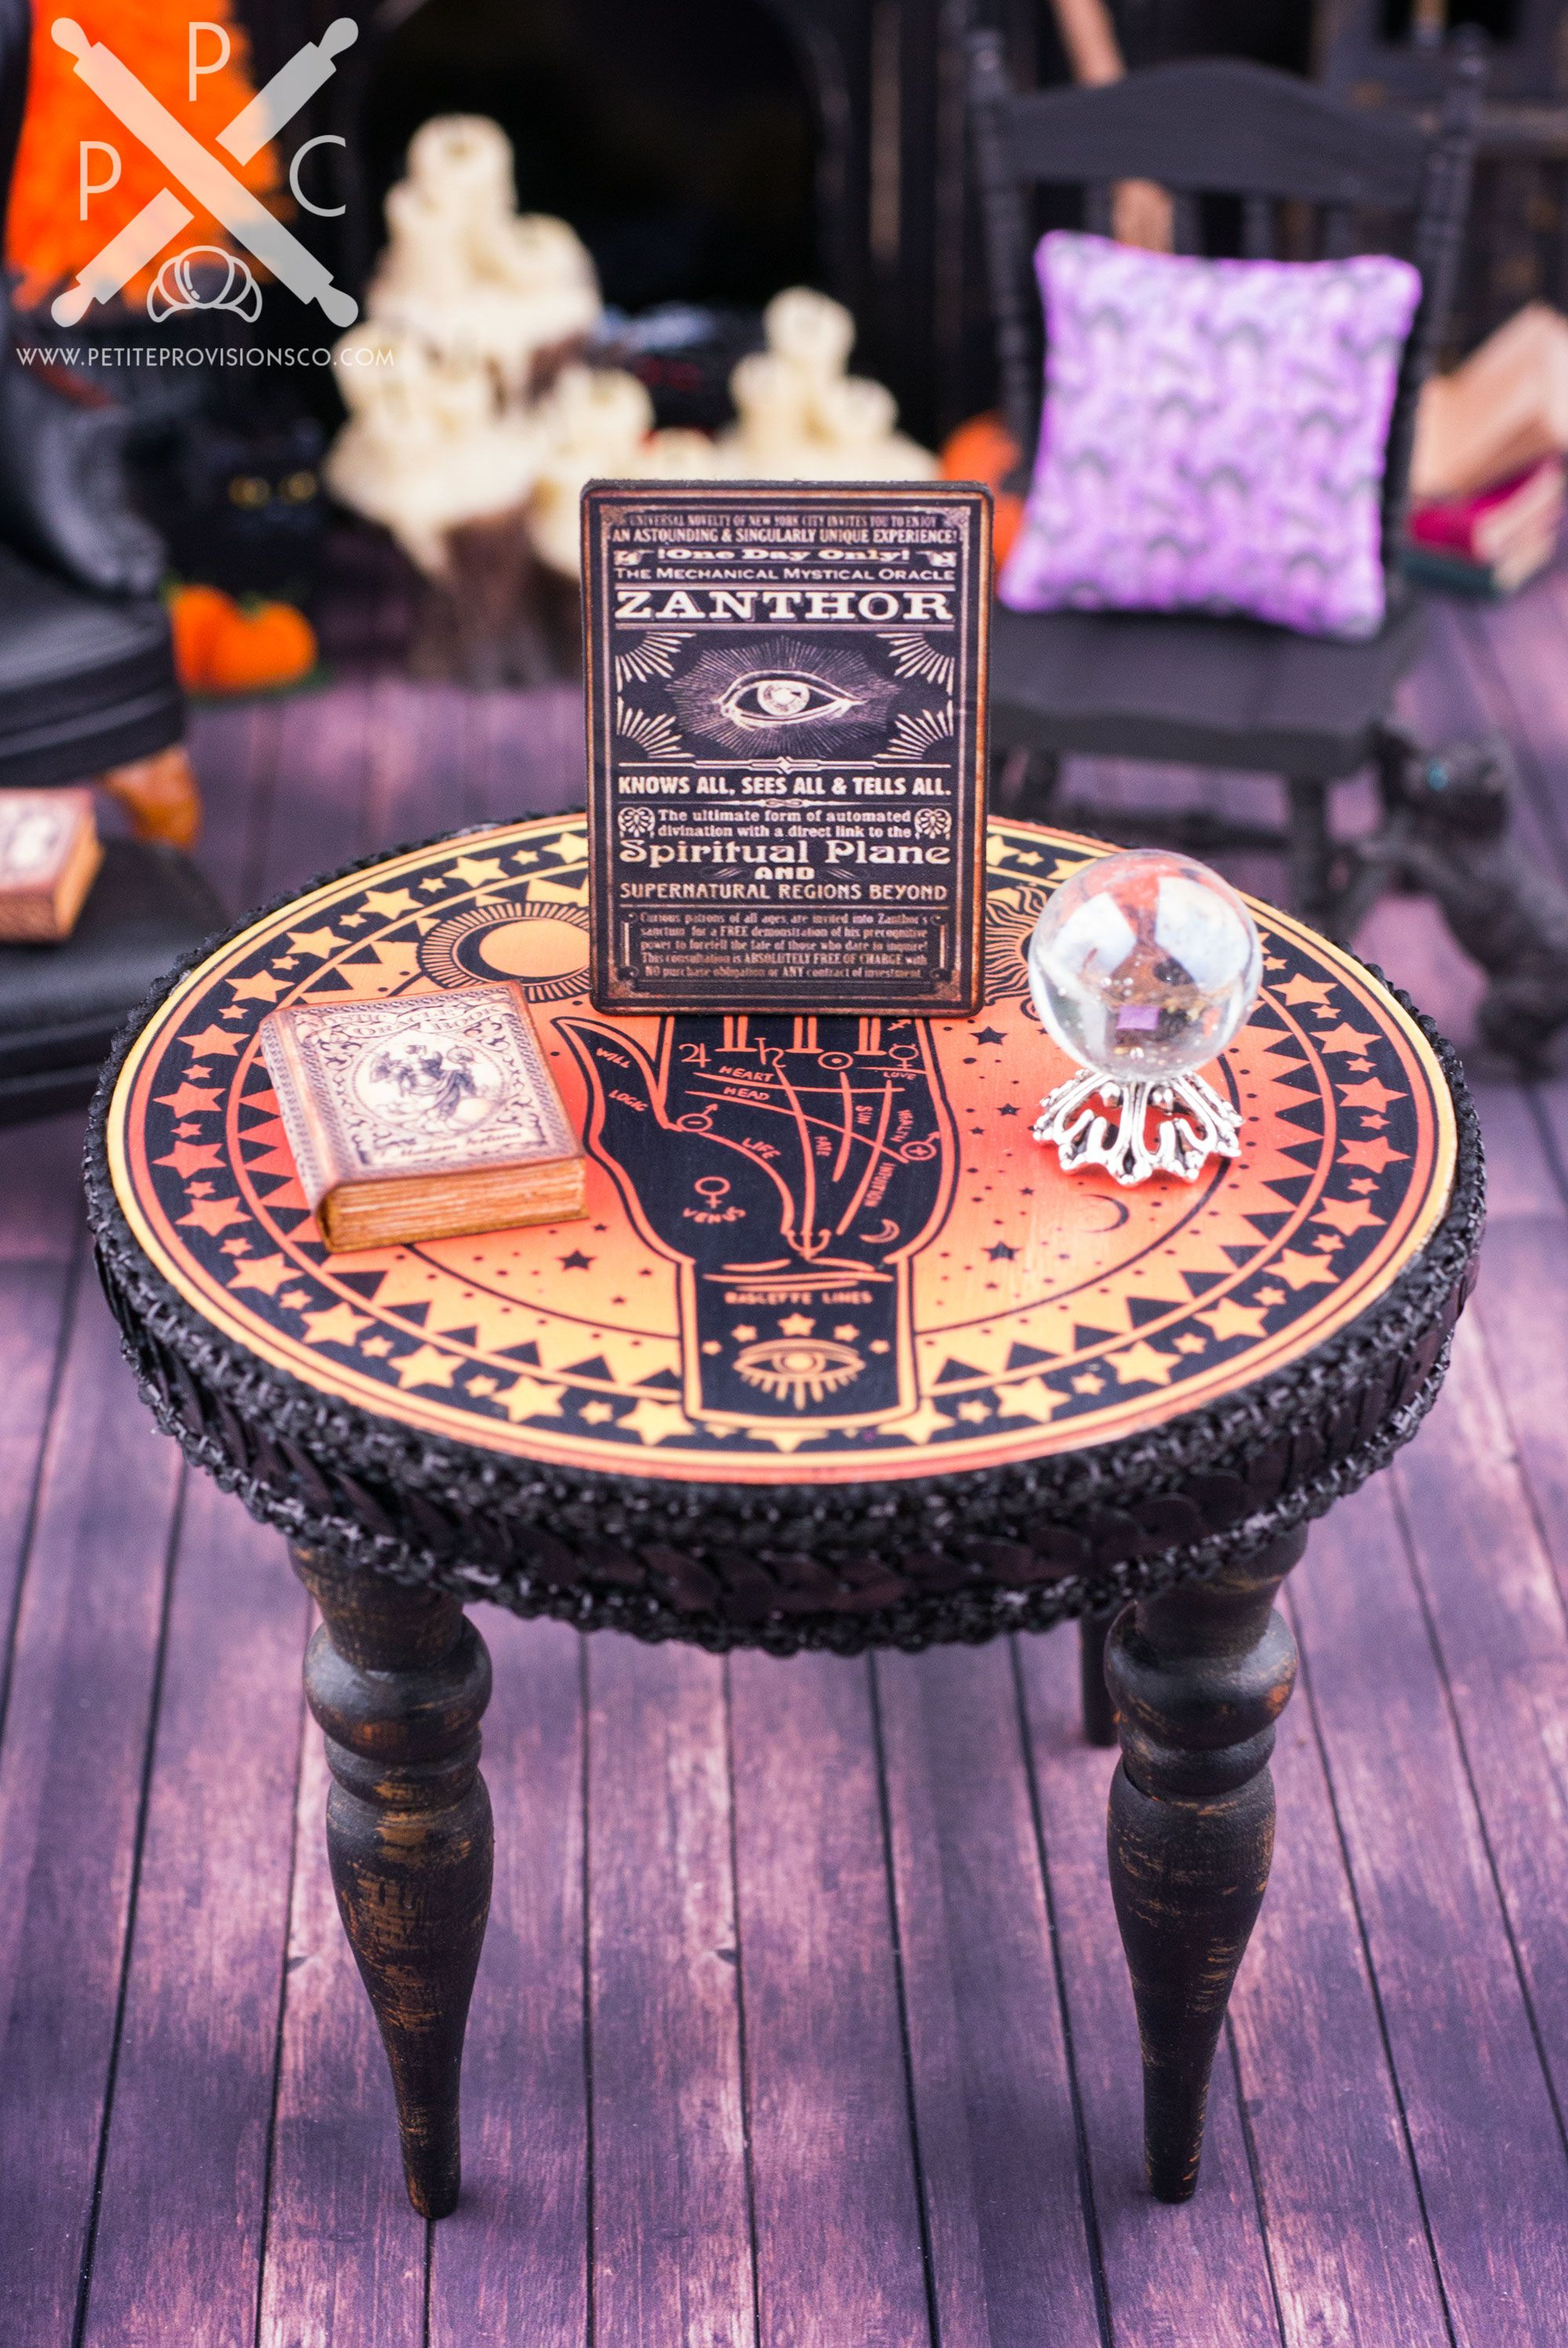 Dollhouse Miniature Palm Reader's Table Halloween Set - 1:12 Dollhouse Miniature - The Petite Provisions Co.